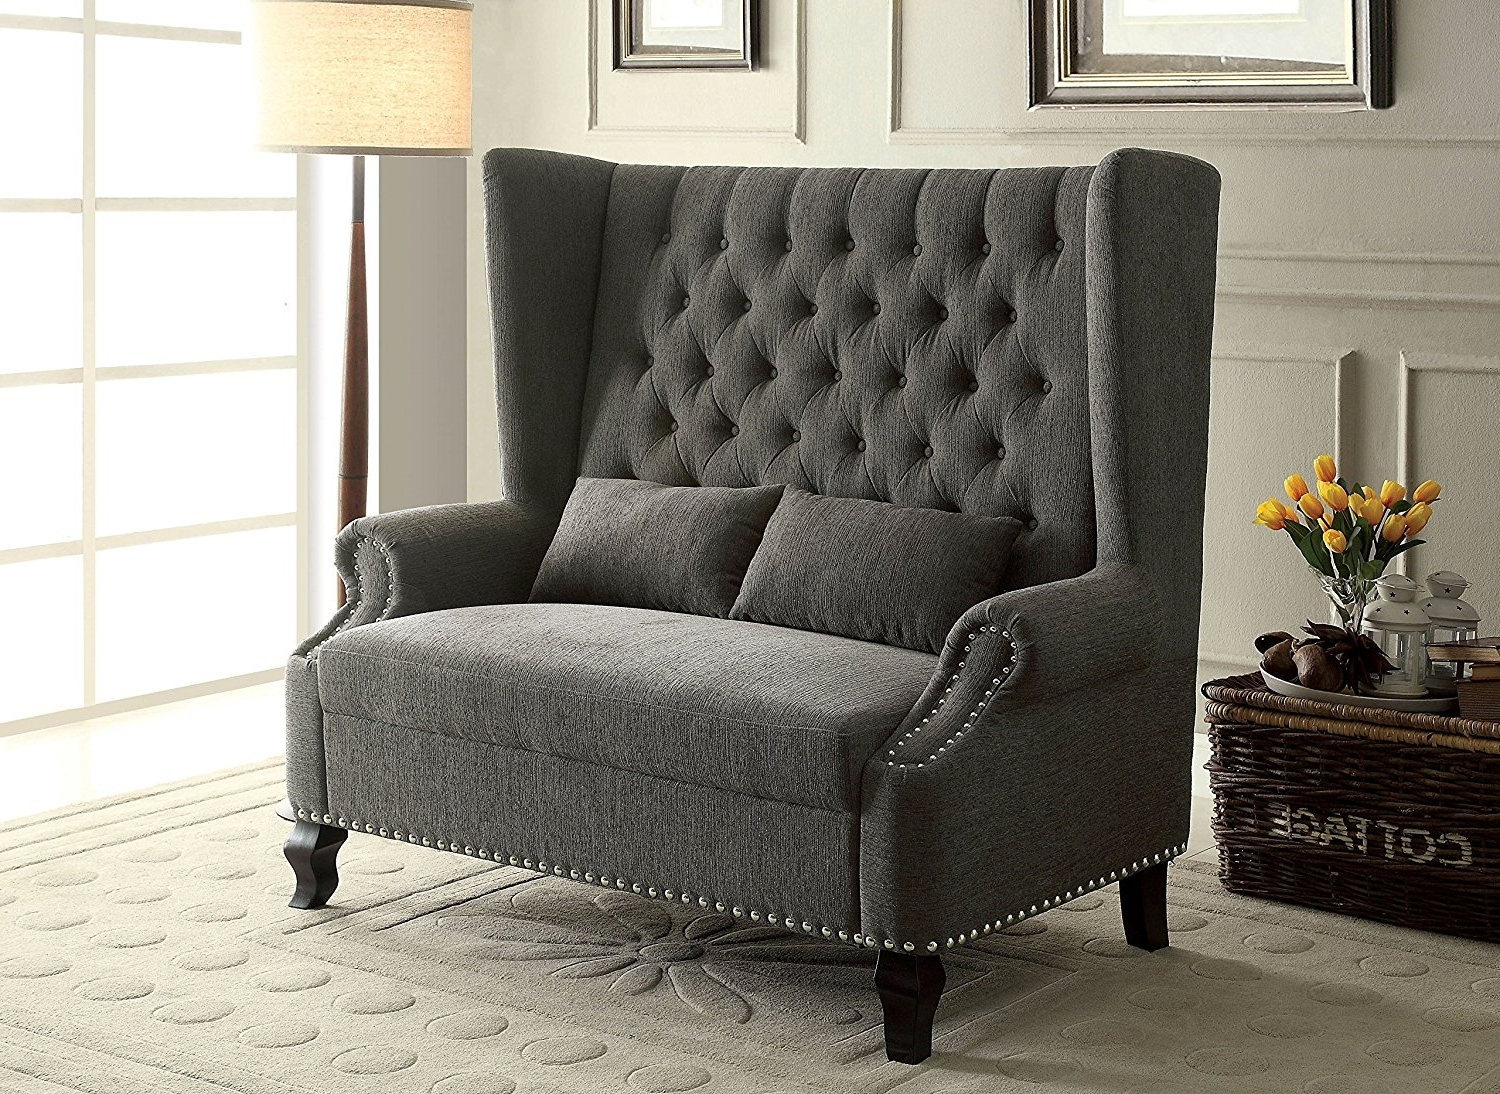 Preferred High Back Sofas And Chairs For Amazon: Furniture Of America Adia Romantic Wingback Love Seat (View 7 of 15)